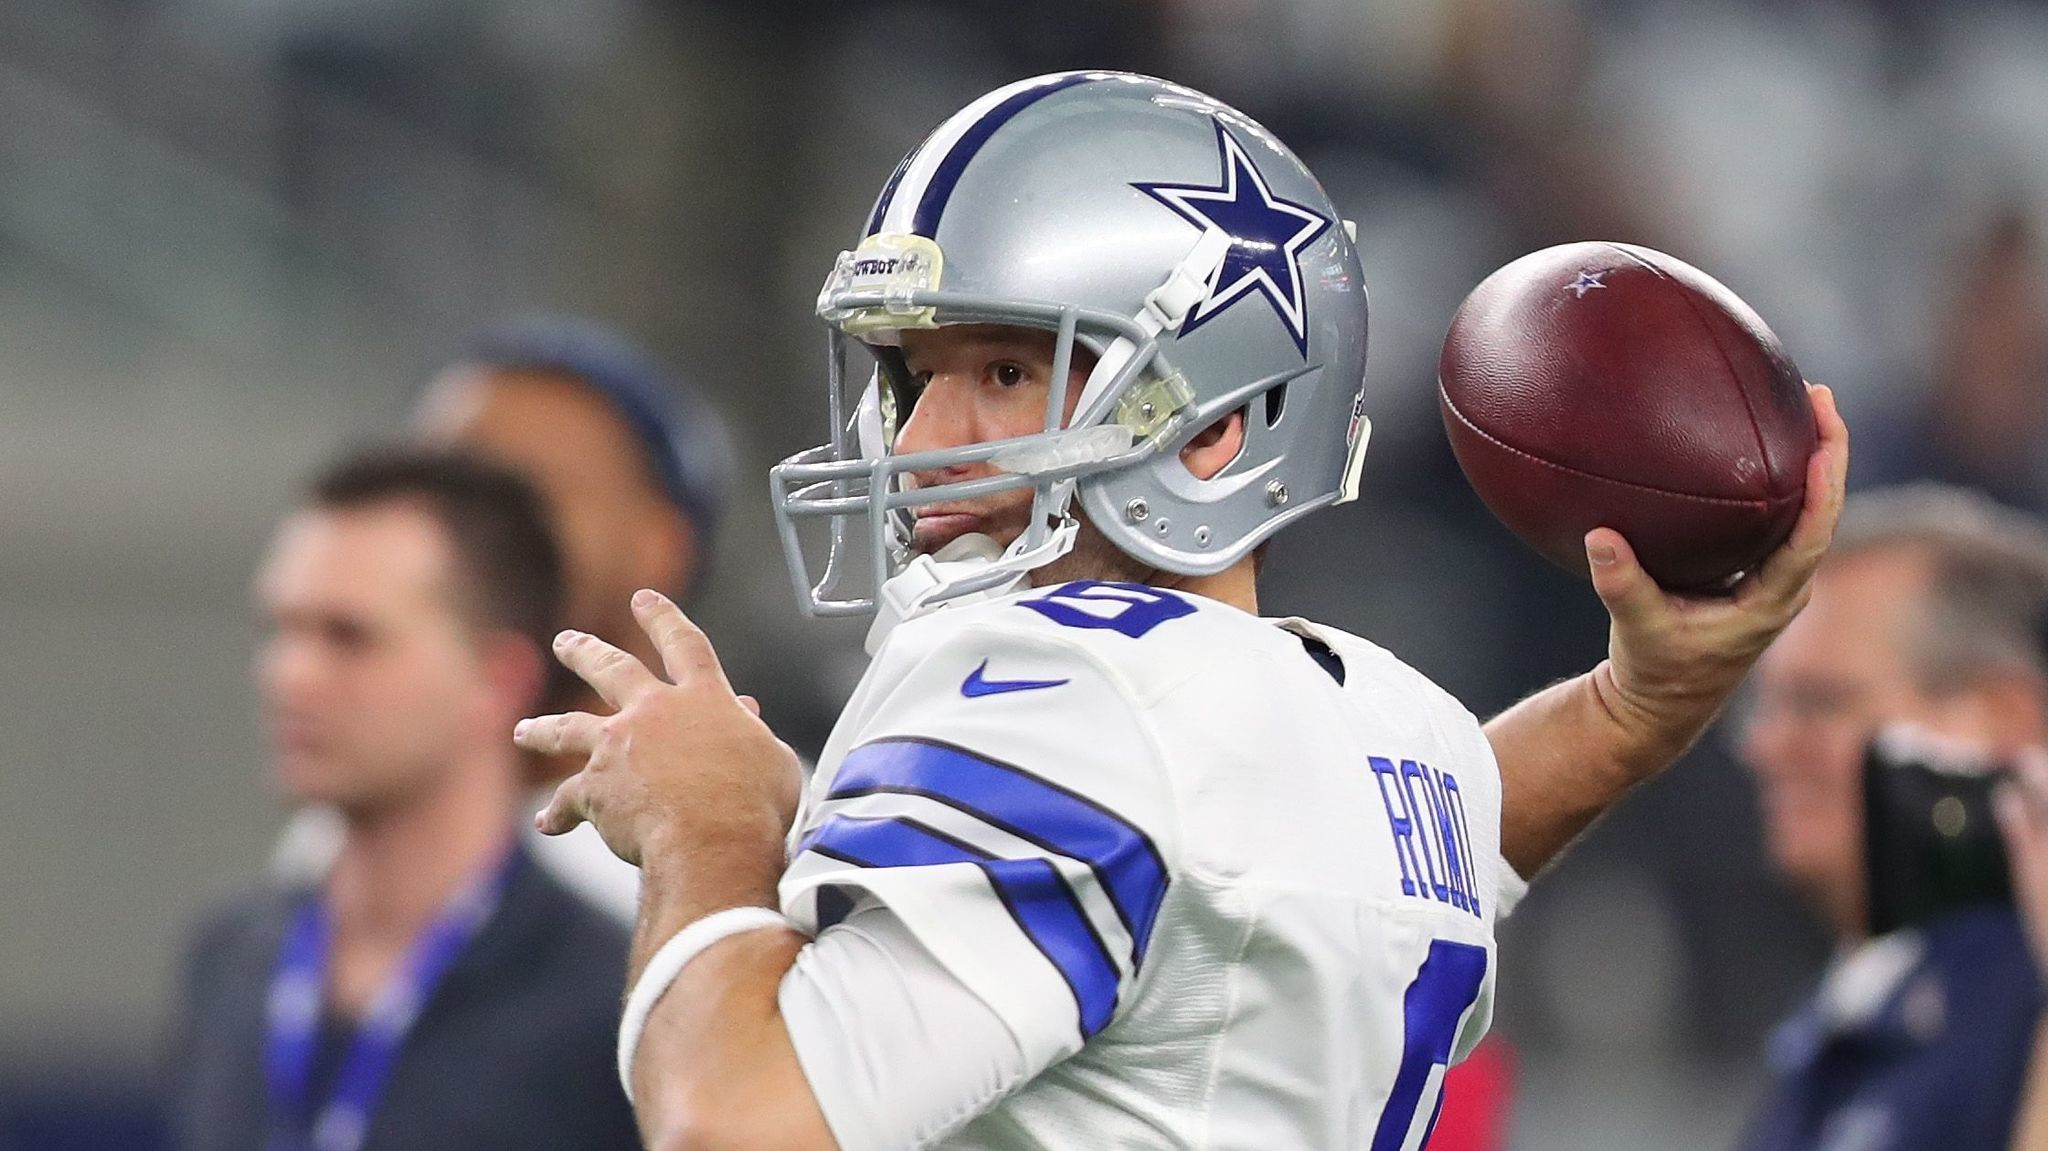 Cowboys have told Tony Romo they will release him on Thursday, reports say